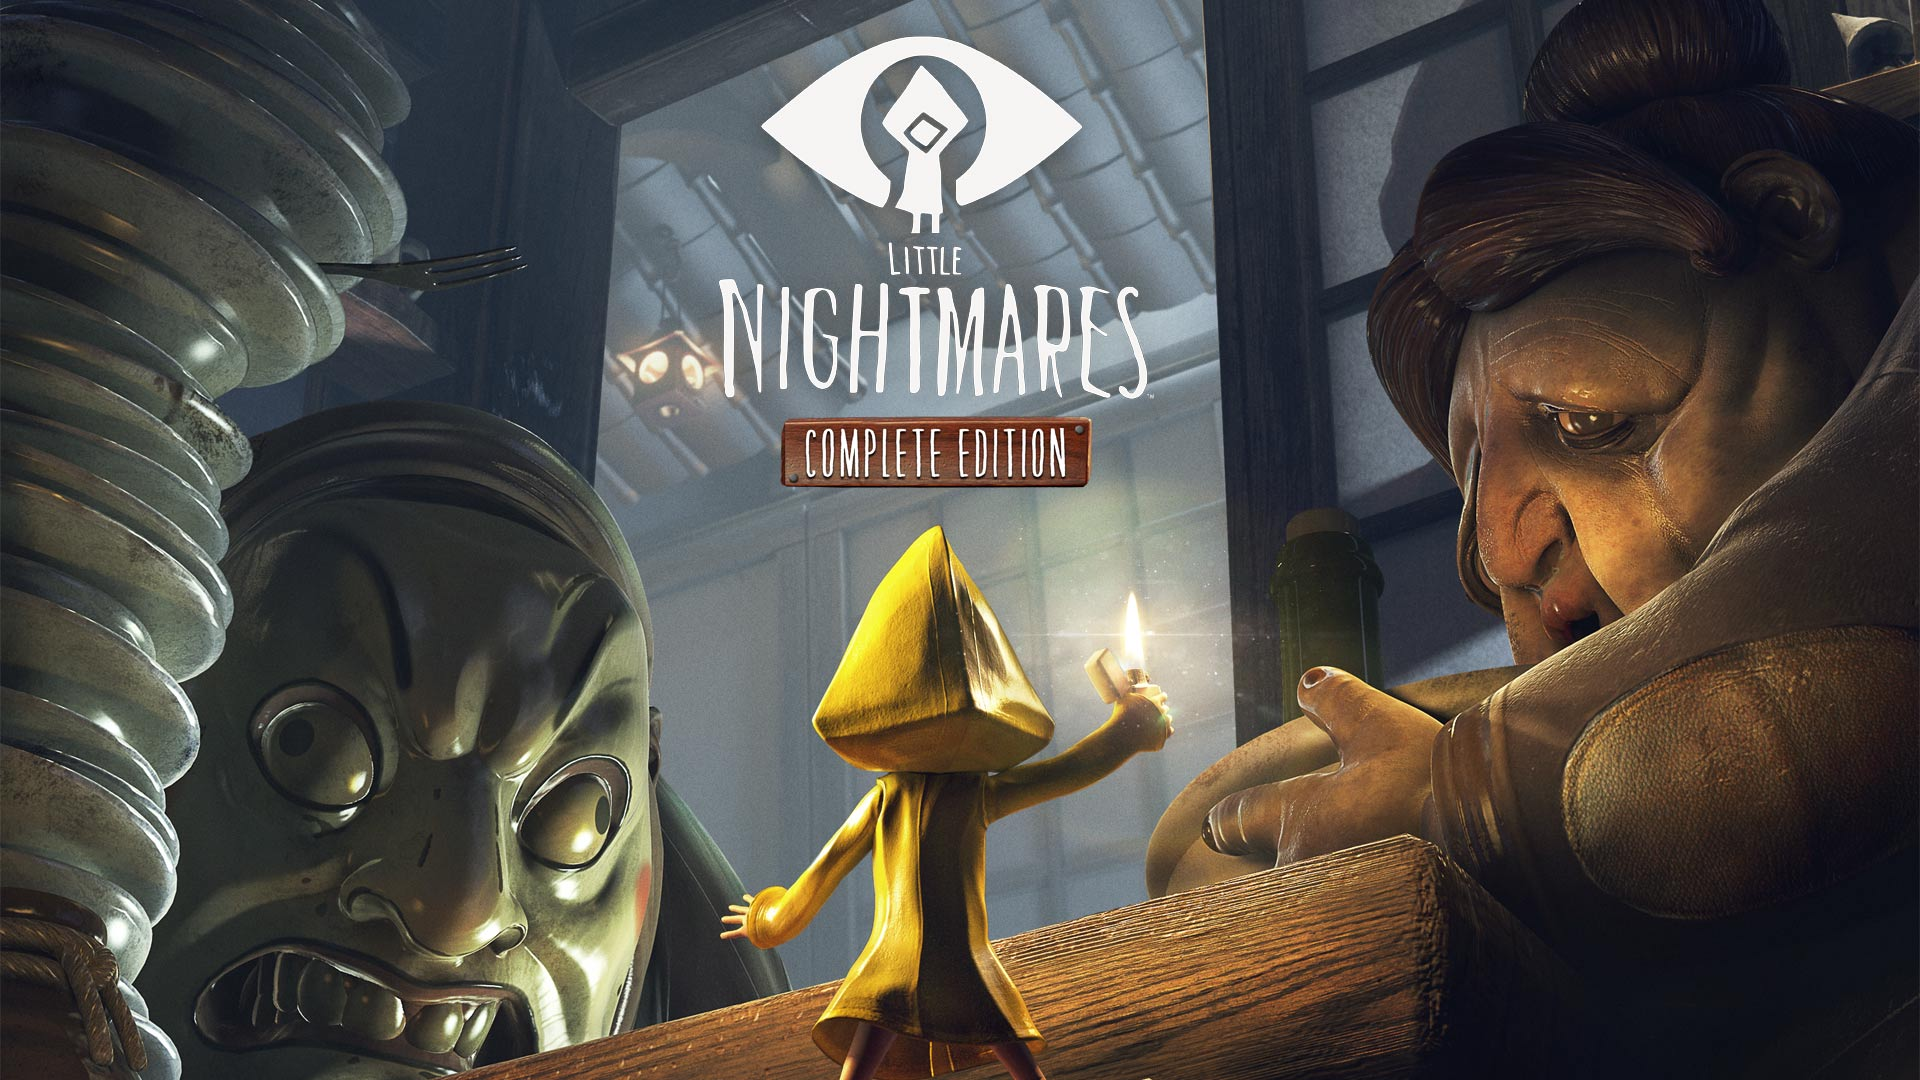 Продано 2 миллиона копий Little Nightmares